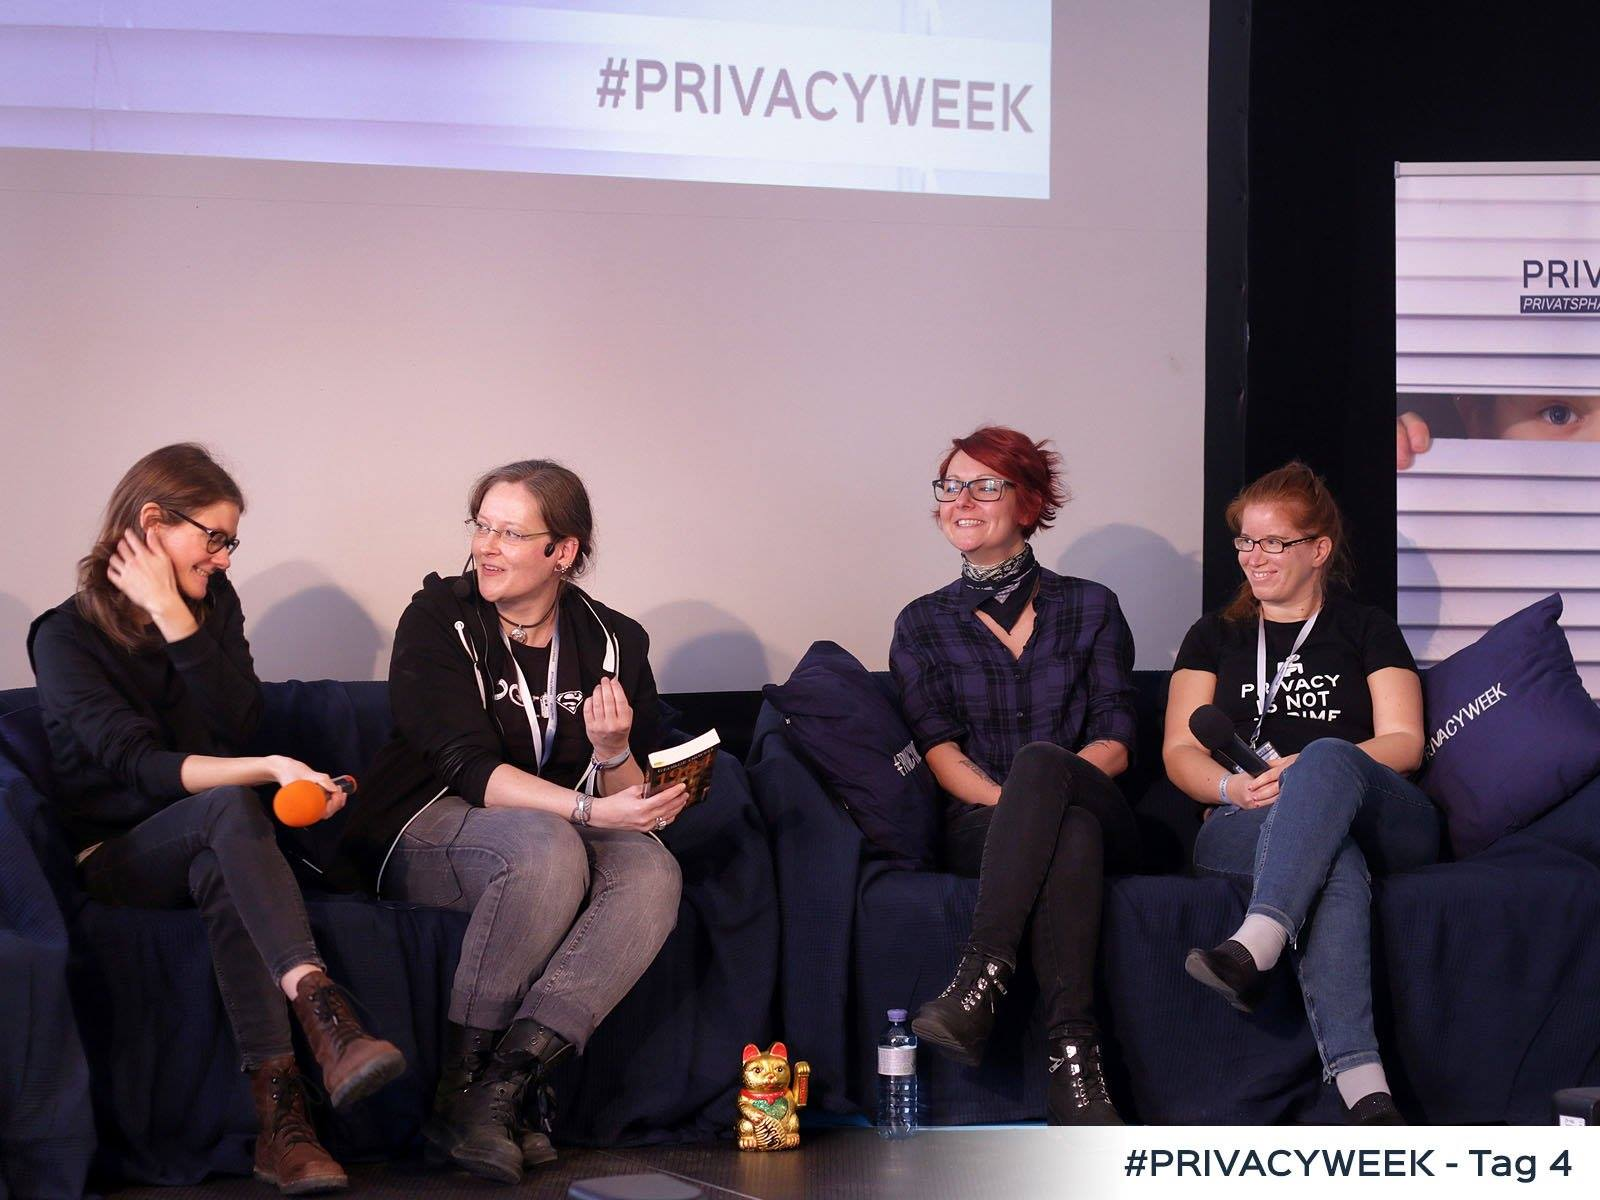 privacy_week-panel-shroombab-jinxx